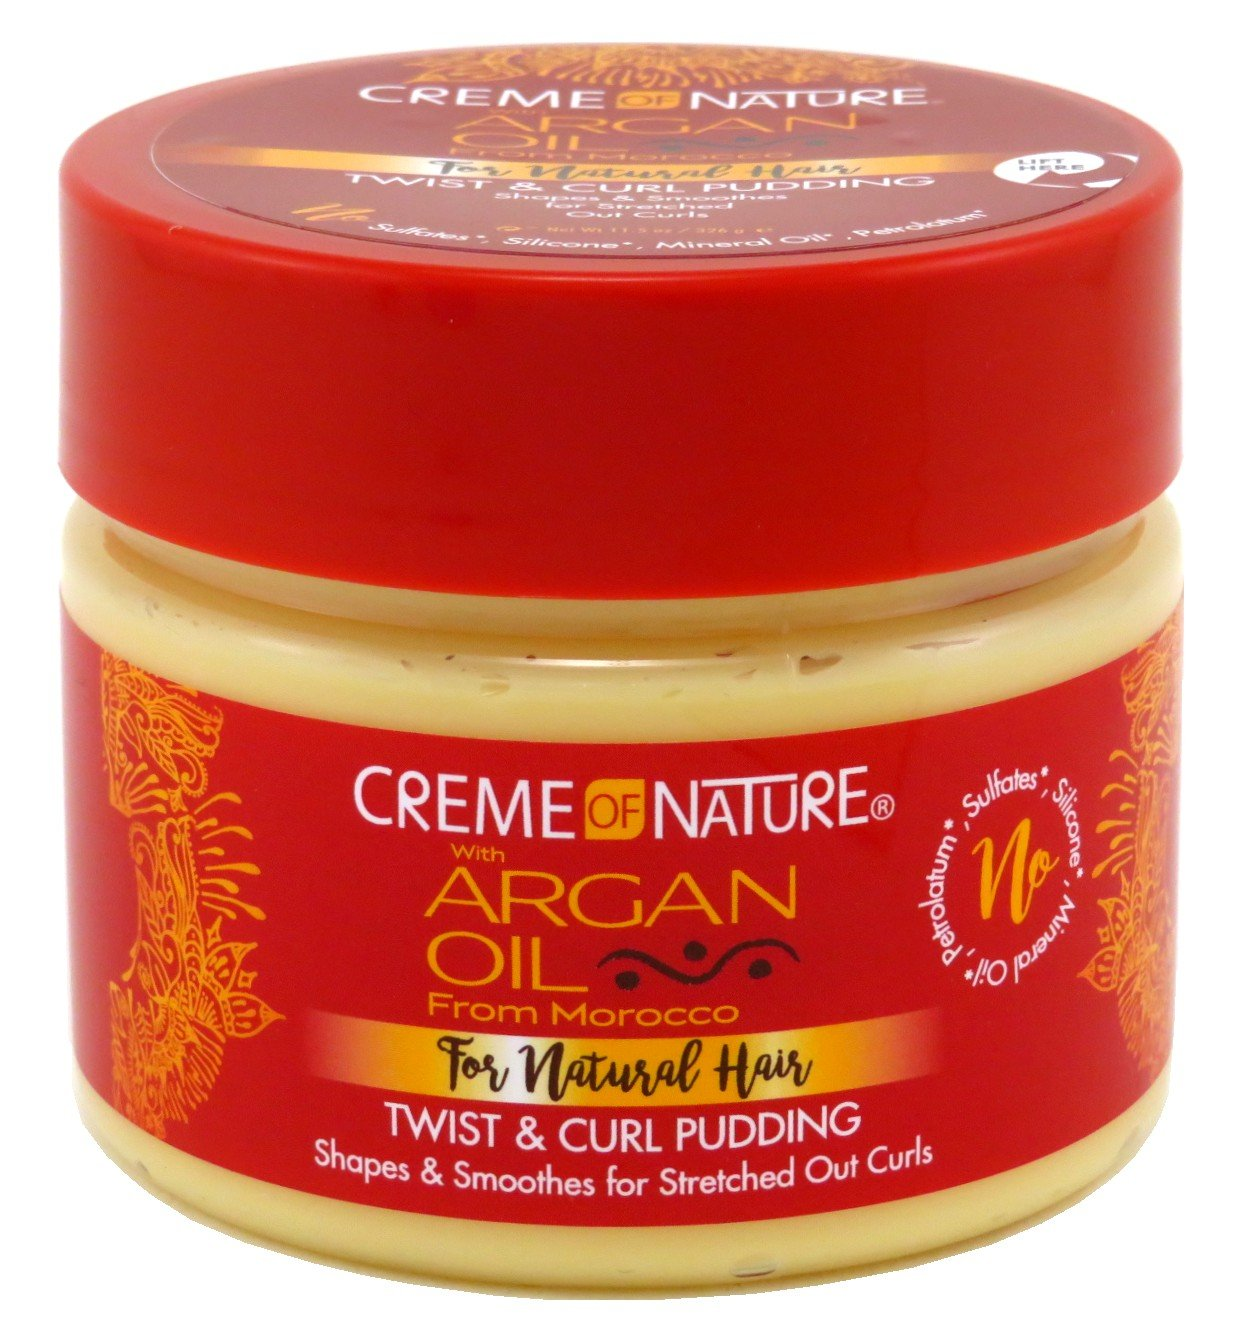 Crème of Nature with Argan Pudding Perfection 11.5oz